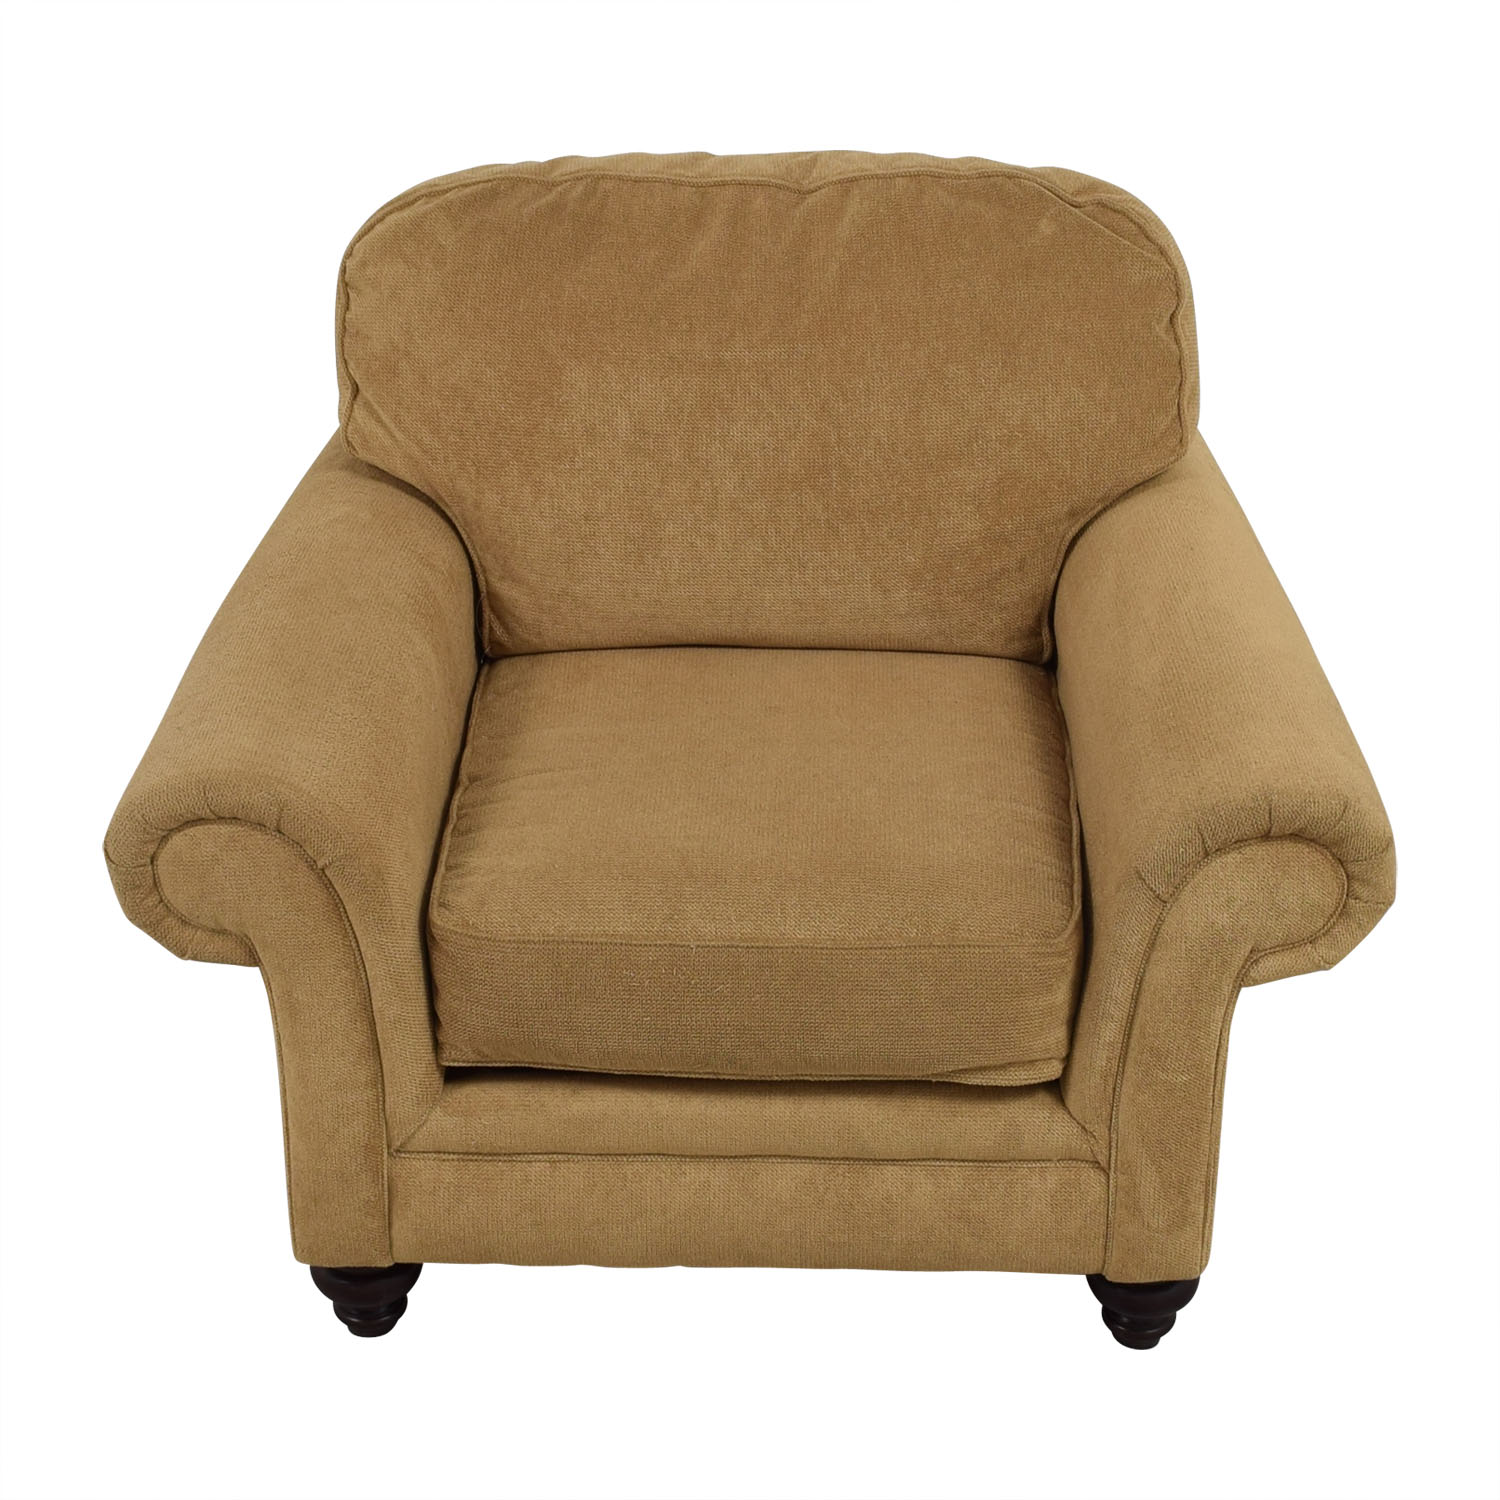 Broyhill Mustard Yellow Accent Chair with Curved Arms Broyhill